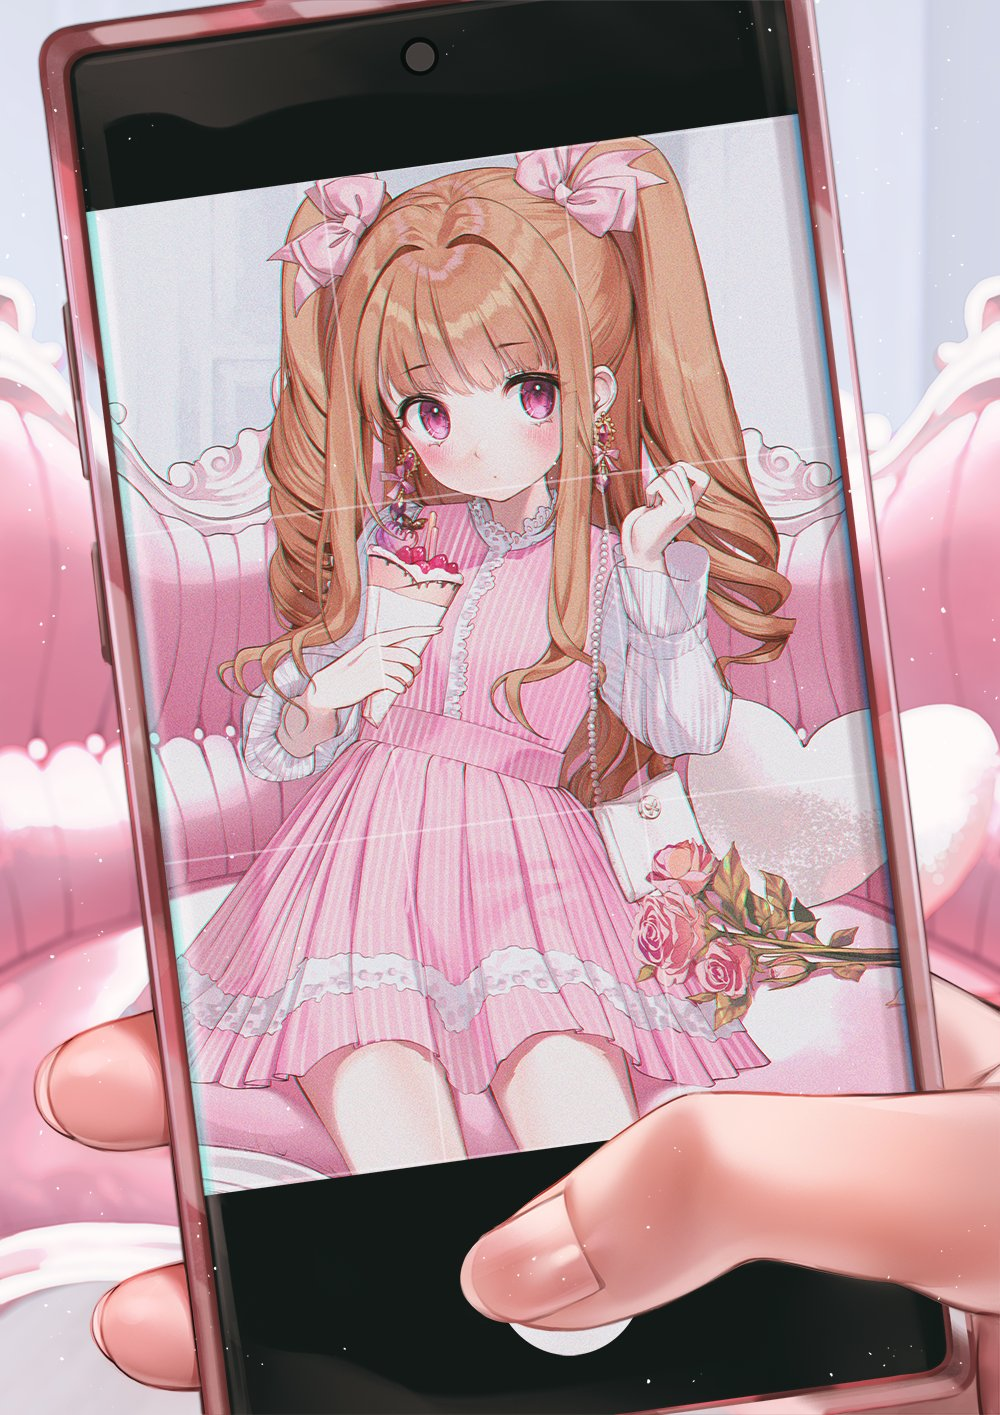 1girl 1other bangs blush bow bow_earrings brown_hair cellphone dress drill_hair earrings eyebrows_visible_through_hair fingernails fingers flower frills hair_bow hands_up heart heart_pillow highres holding indoors jewelry kinty long_hair long_sleeves looking_at_viewer original parfait phone phone_screen pillow pink_bow pink_dress pink_eyes pink_flower pink_rose rose sitting smartphone solo_focus symbol_commentary taking_picture twintails